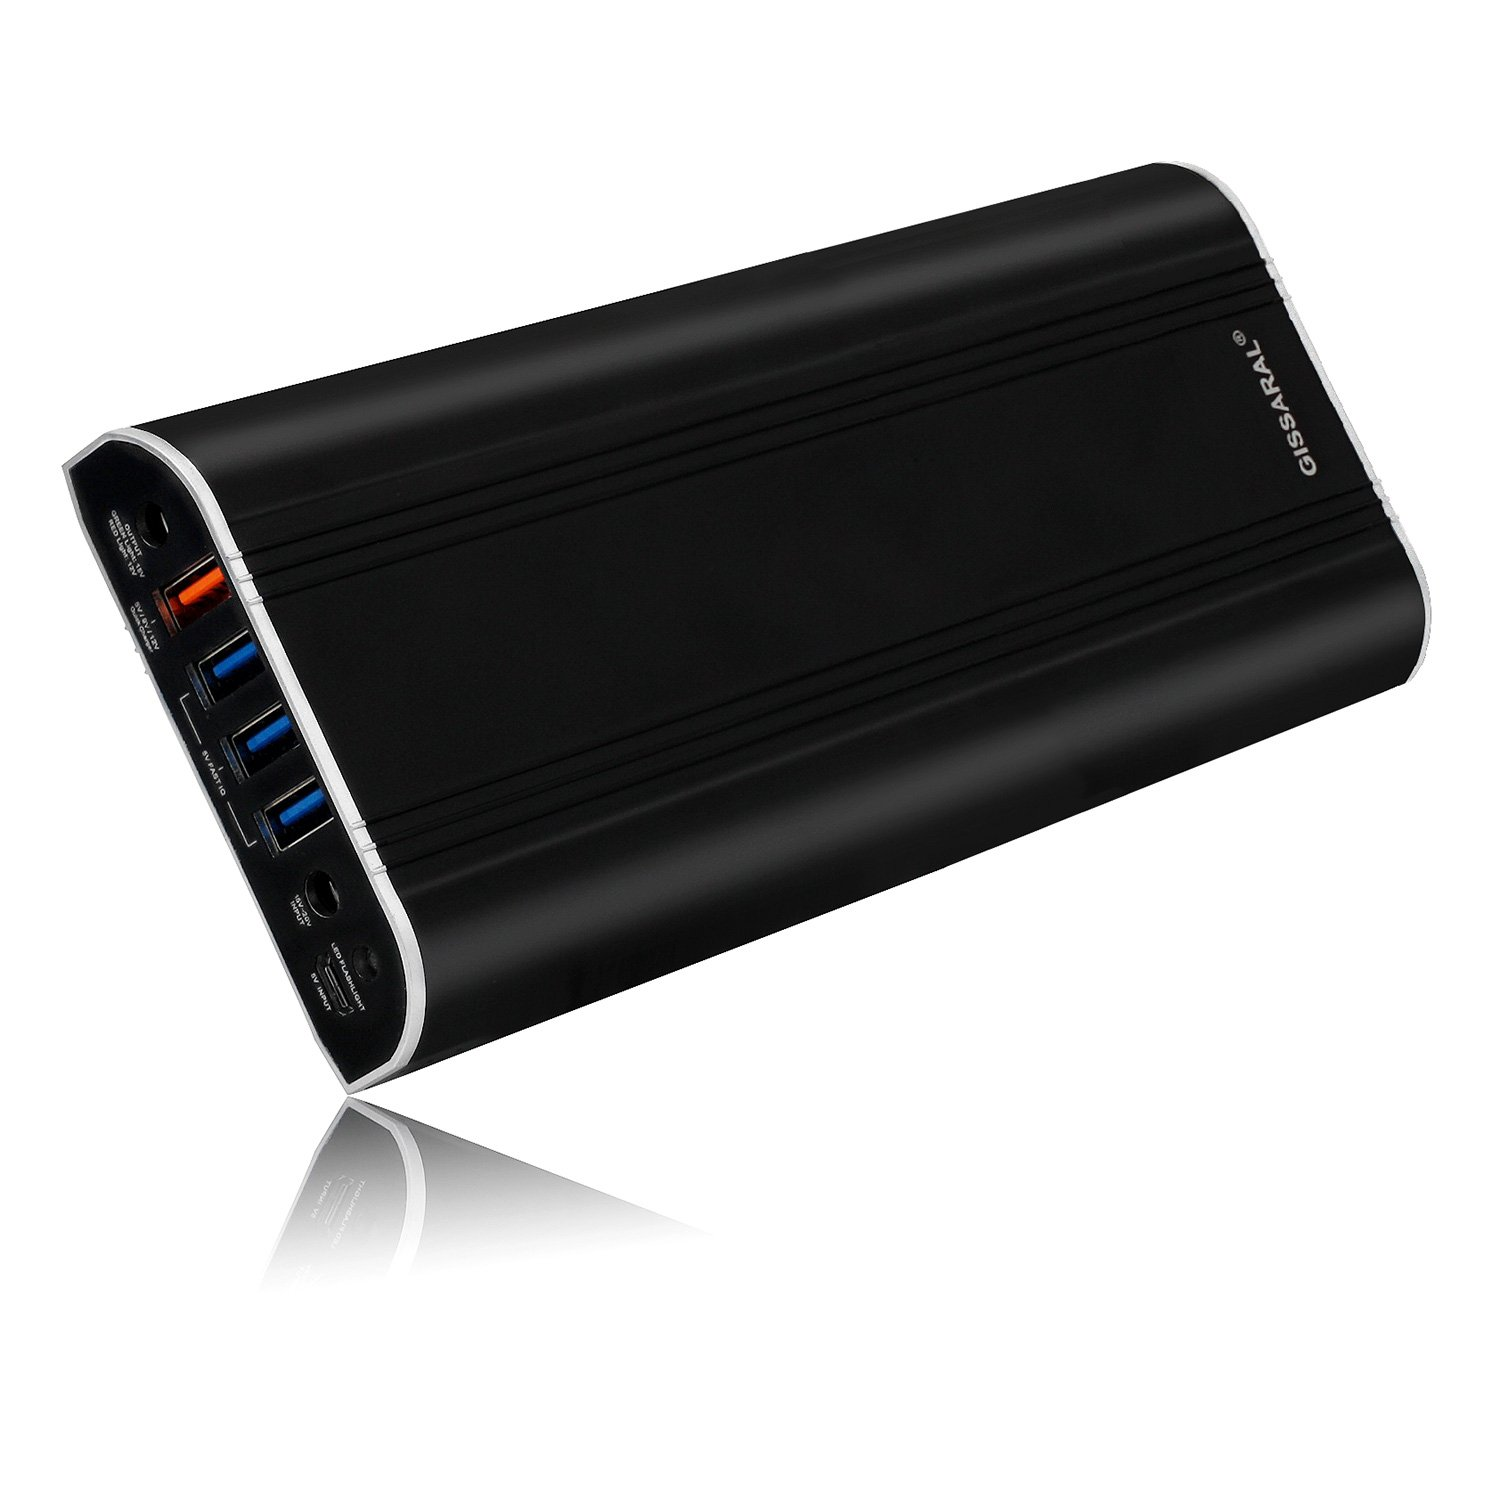 GISSARAL 35000mAh Power Bank Portable External Battery Charger for Surface Pro 4 Book Pro 3 Pro 2 RT, 4 USB Ports Quick Charge for Tablets or Smartphones -Black by GISSARAL